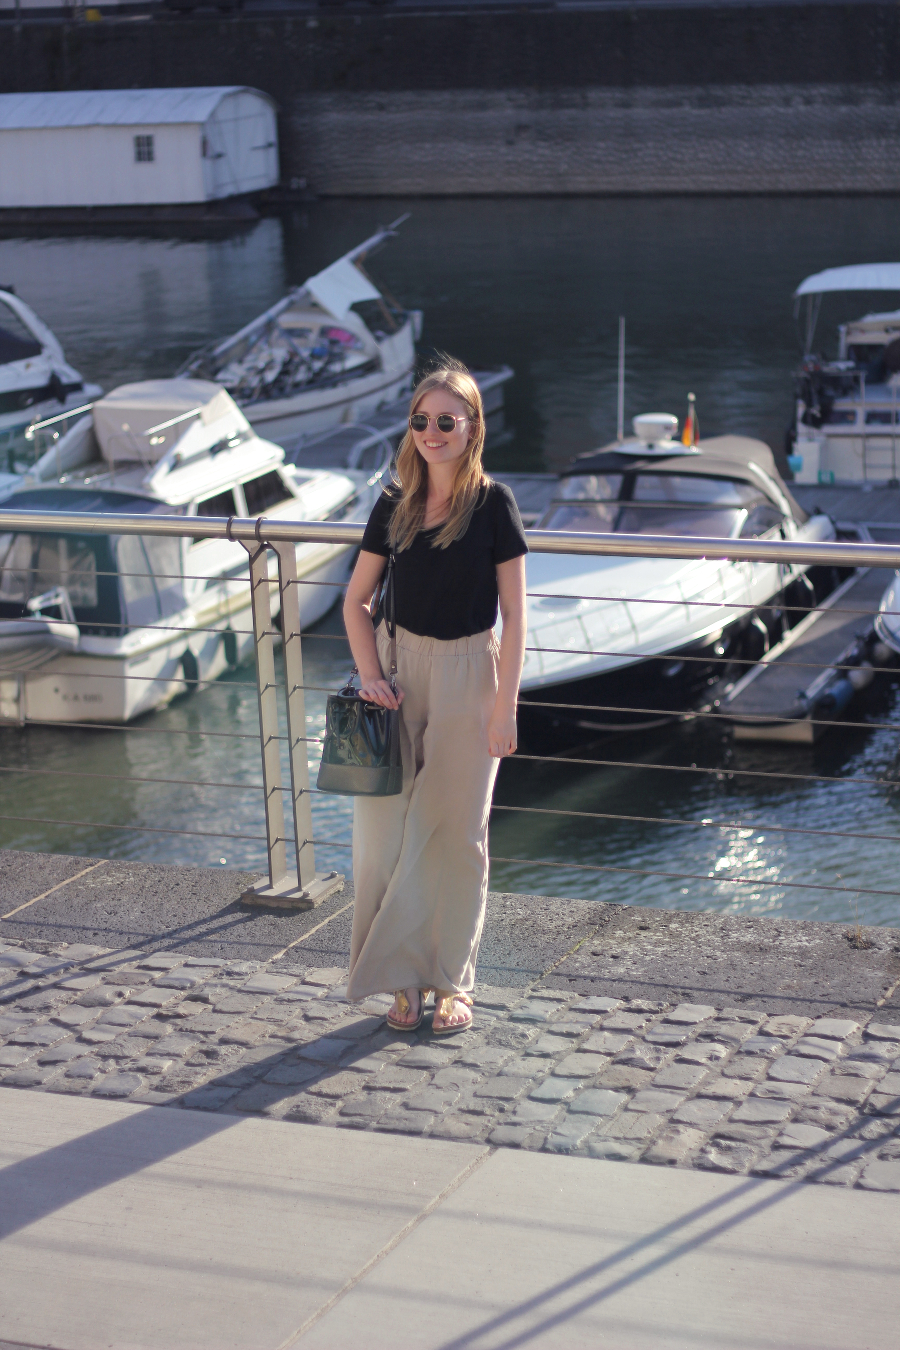 outfit sommer lachen rayban palazzo hose shirt boote bucketbag sandalen urlaubs feeling